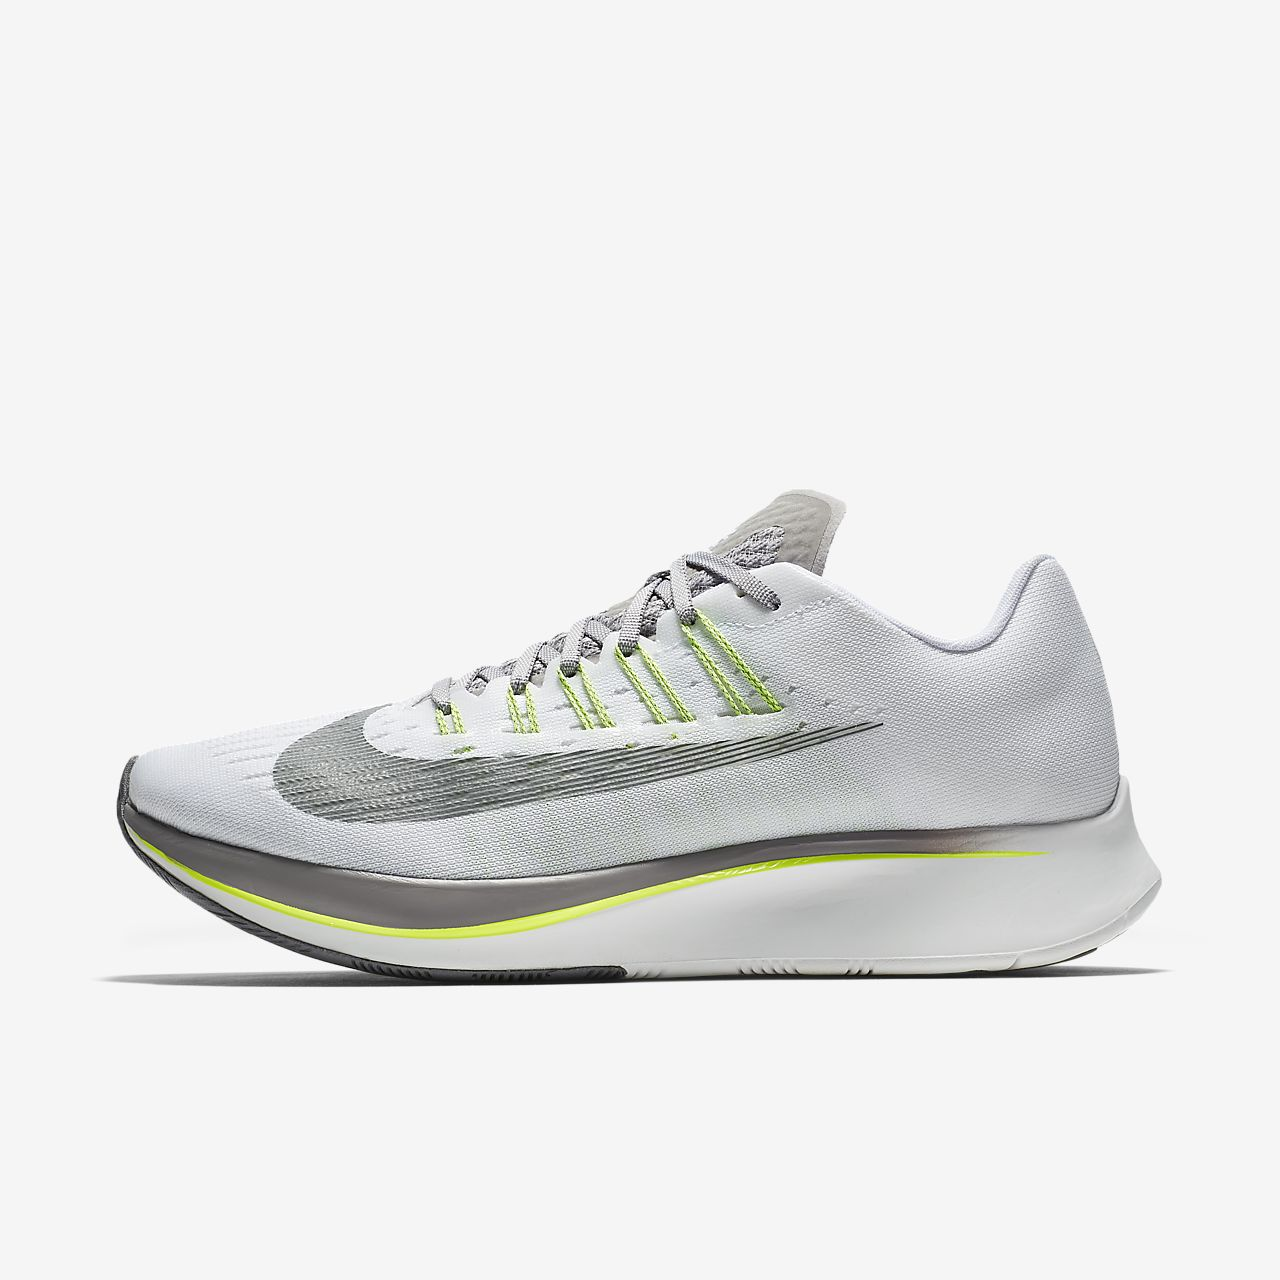 9bfffce29ec Nike Zoom Fly Men s Running Shoe. Nike.com